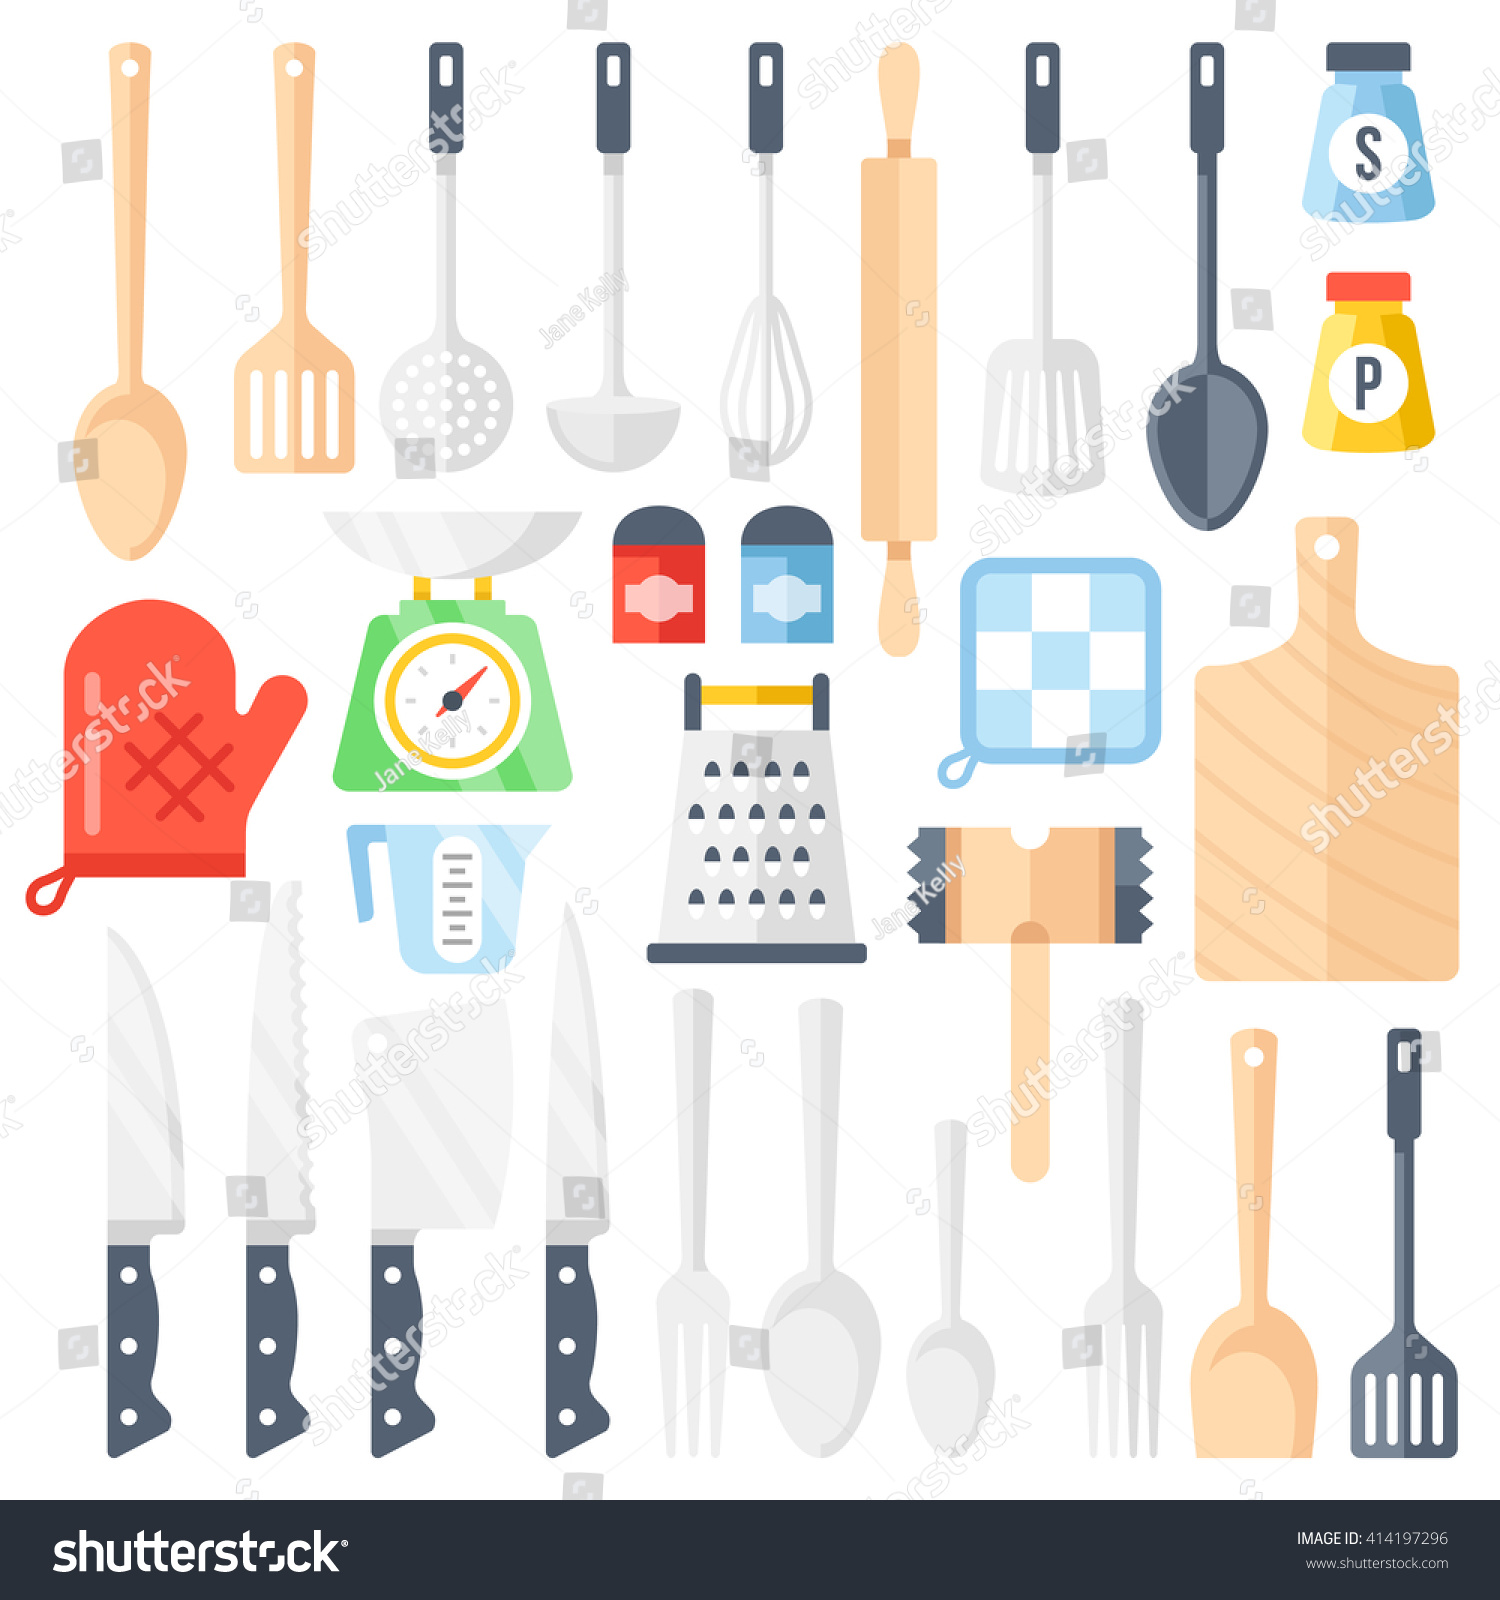 Different Kitchen Tools And Equipment ~ Kitchen tools cooking equipment utensils stock